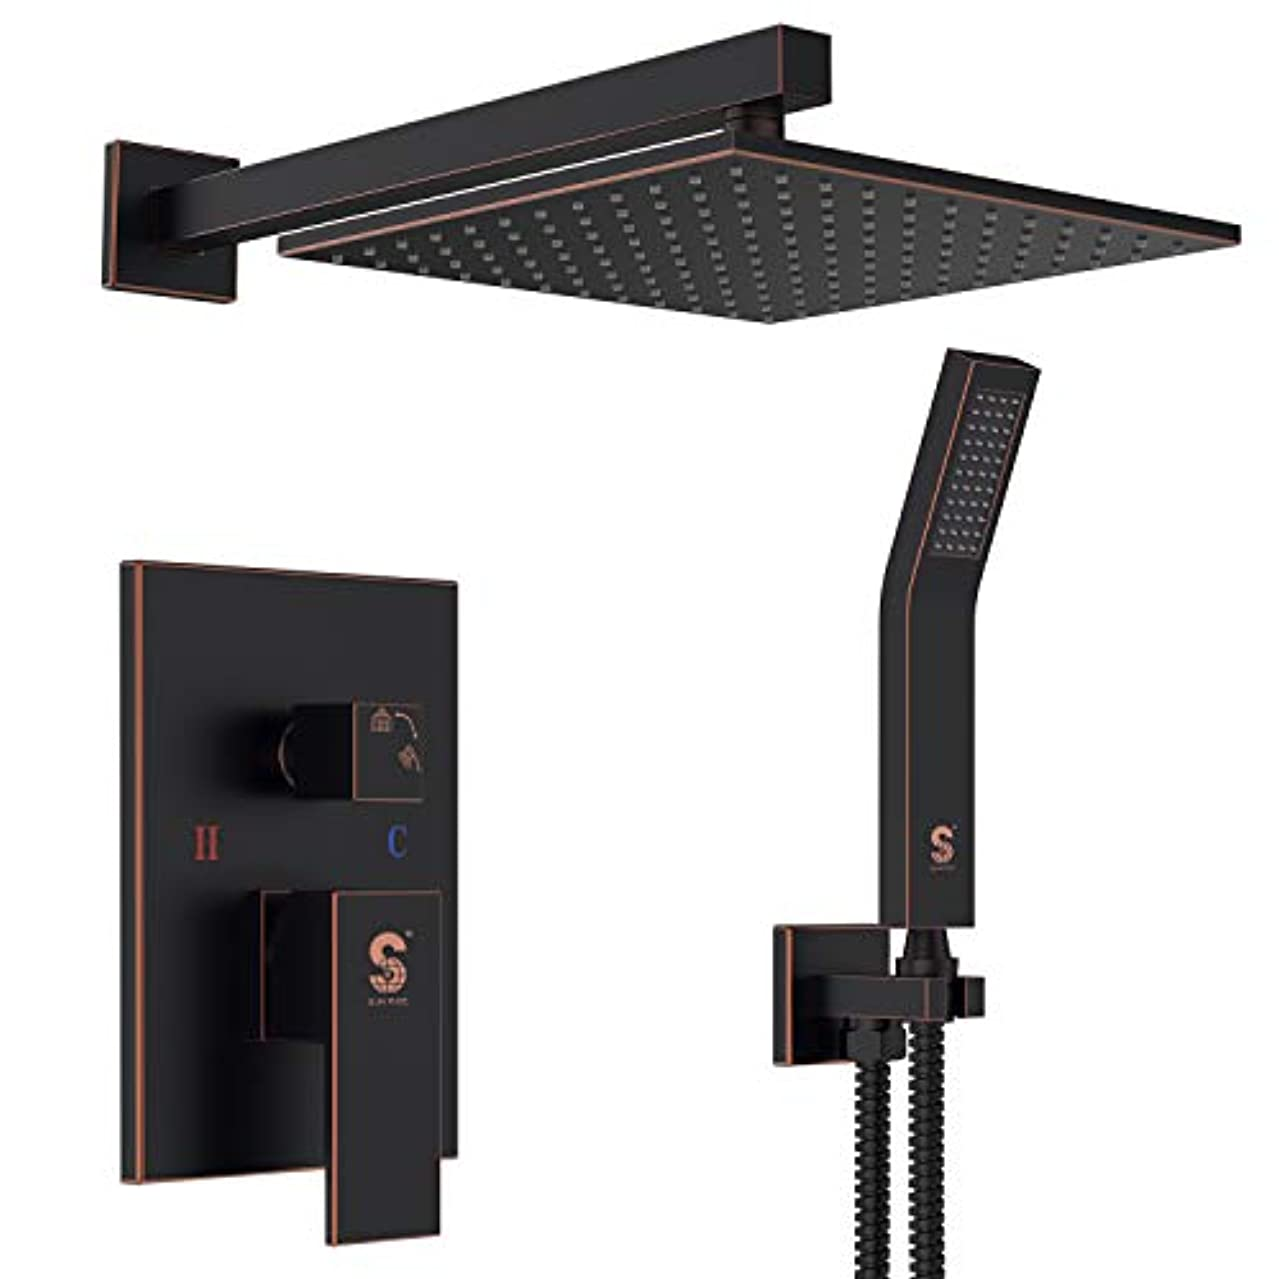 SR SUN RISE Oil Rubbed Bronze Shower System 10 Inch Brass Bathroom Luxury Rain Mixer Shower Combo Set Wall Mounted Rainfall Shower Head System(Contain Shower faucet rough-in valve body and trim)